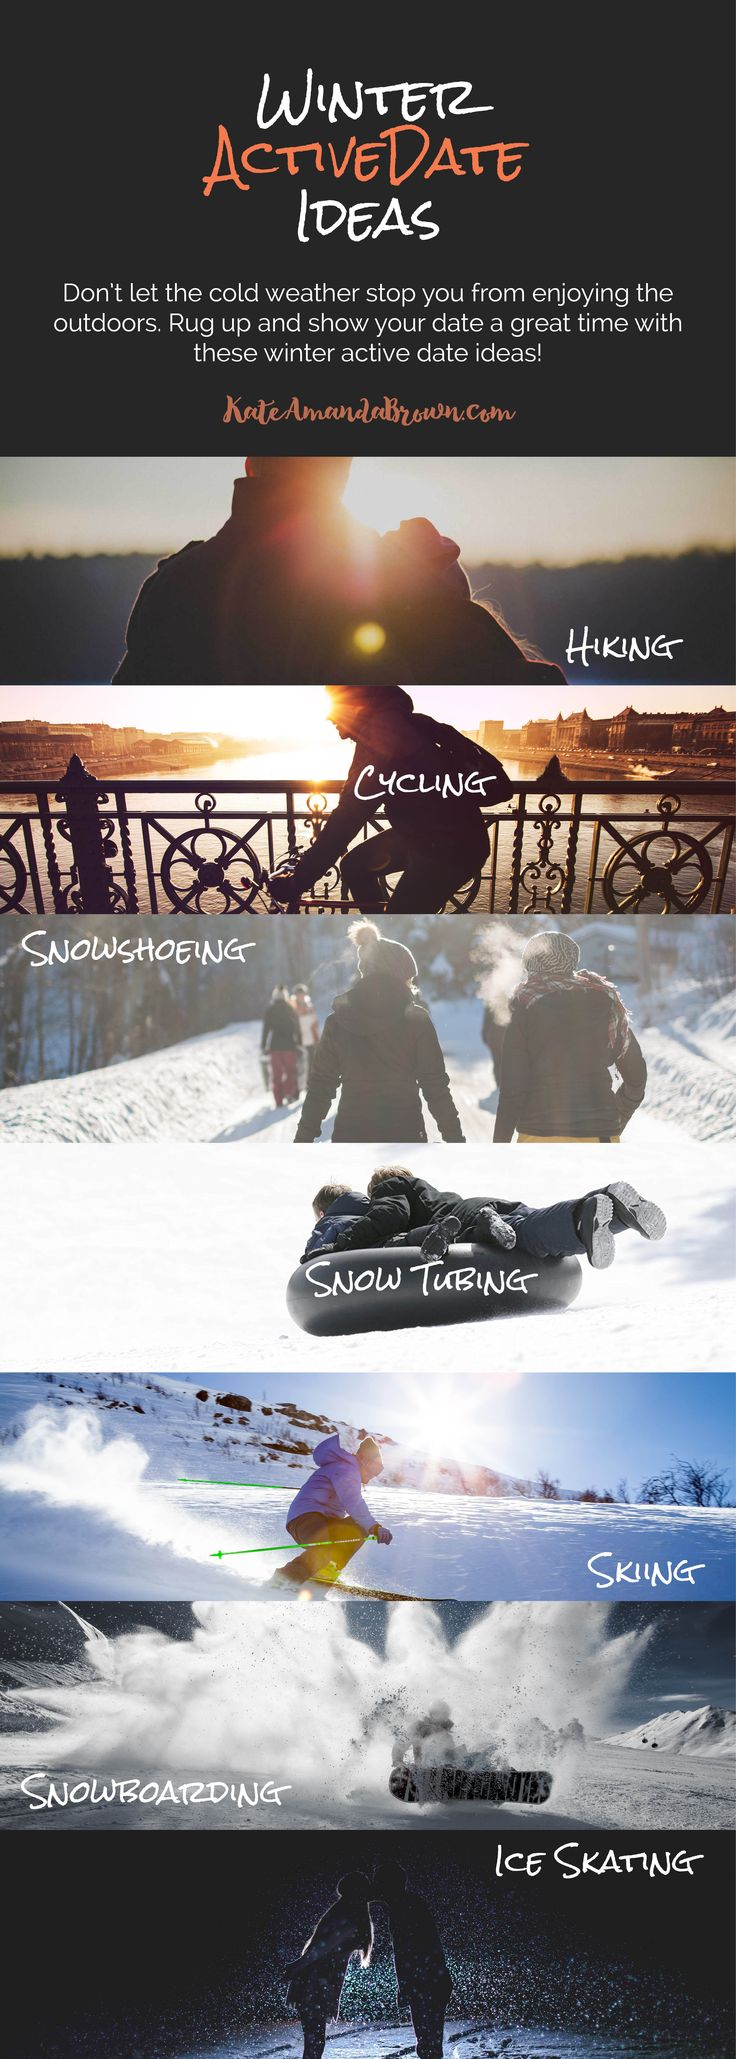 Don't let the cold weather stop you from enjoying the outdoors. Rug up and show your date a great time with these winter active date ideas! Kate Amanda Brown | Healthy Lifestyle by Design | winter date ideas, outdoor date ideas, active dates, fit couple, date ideas for cold weather